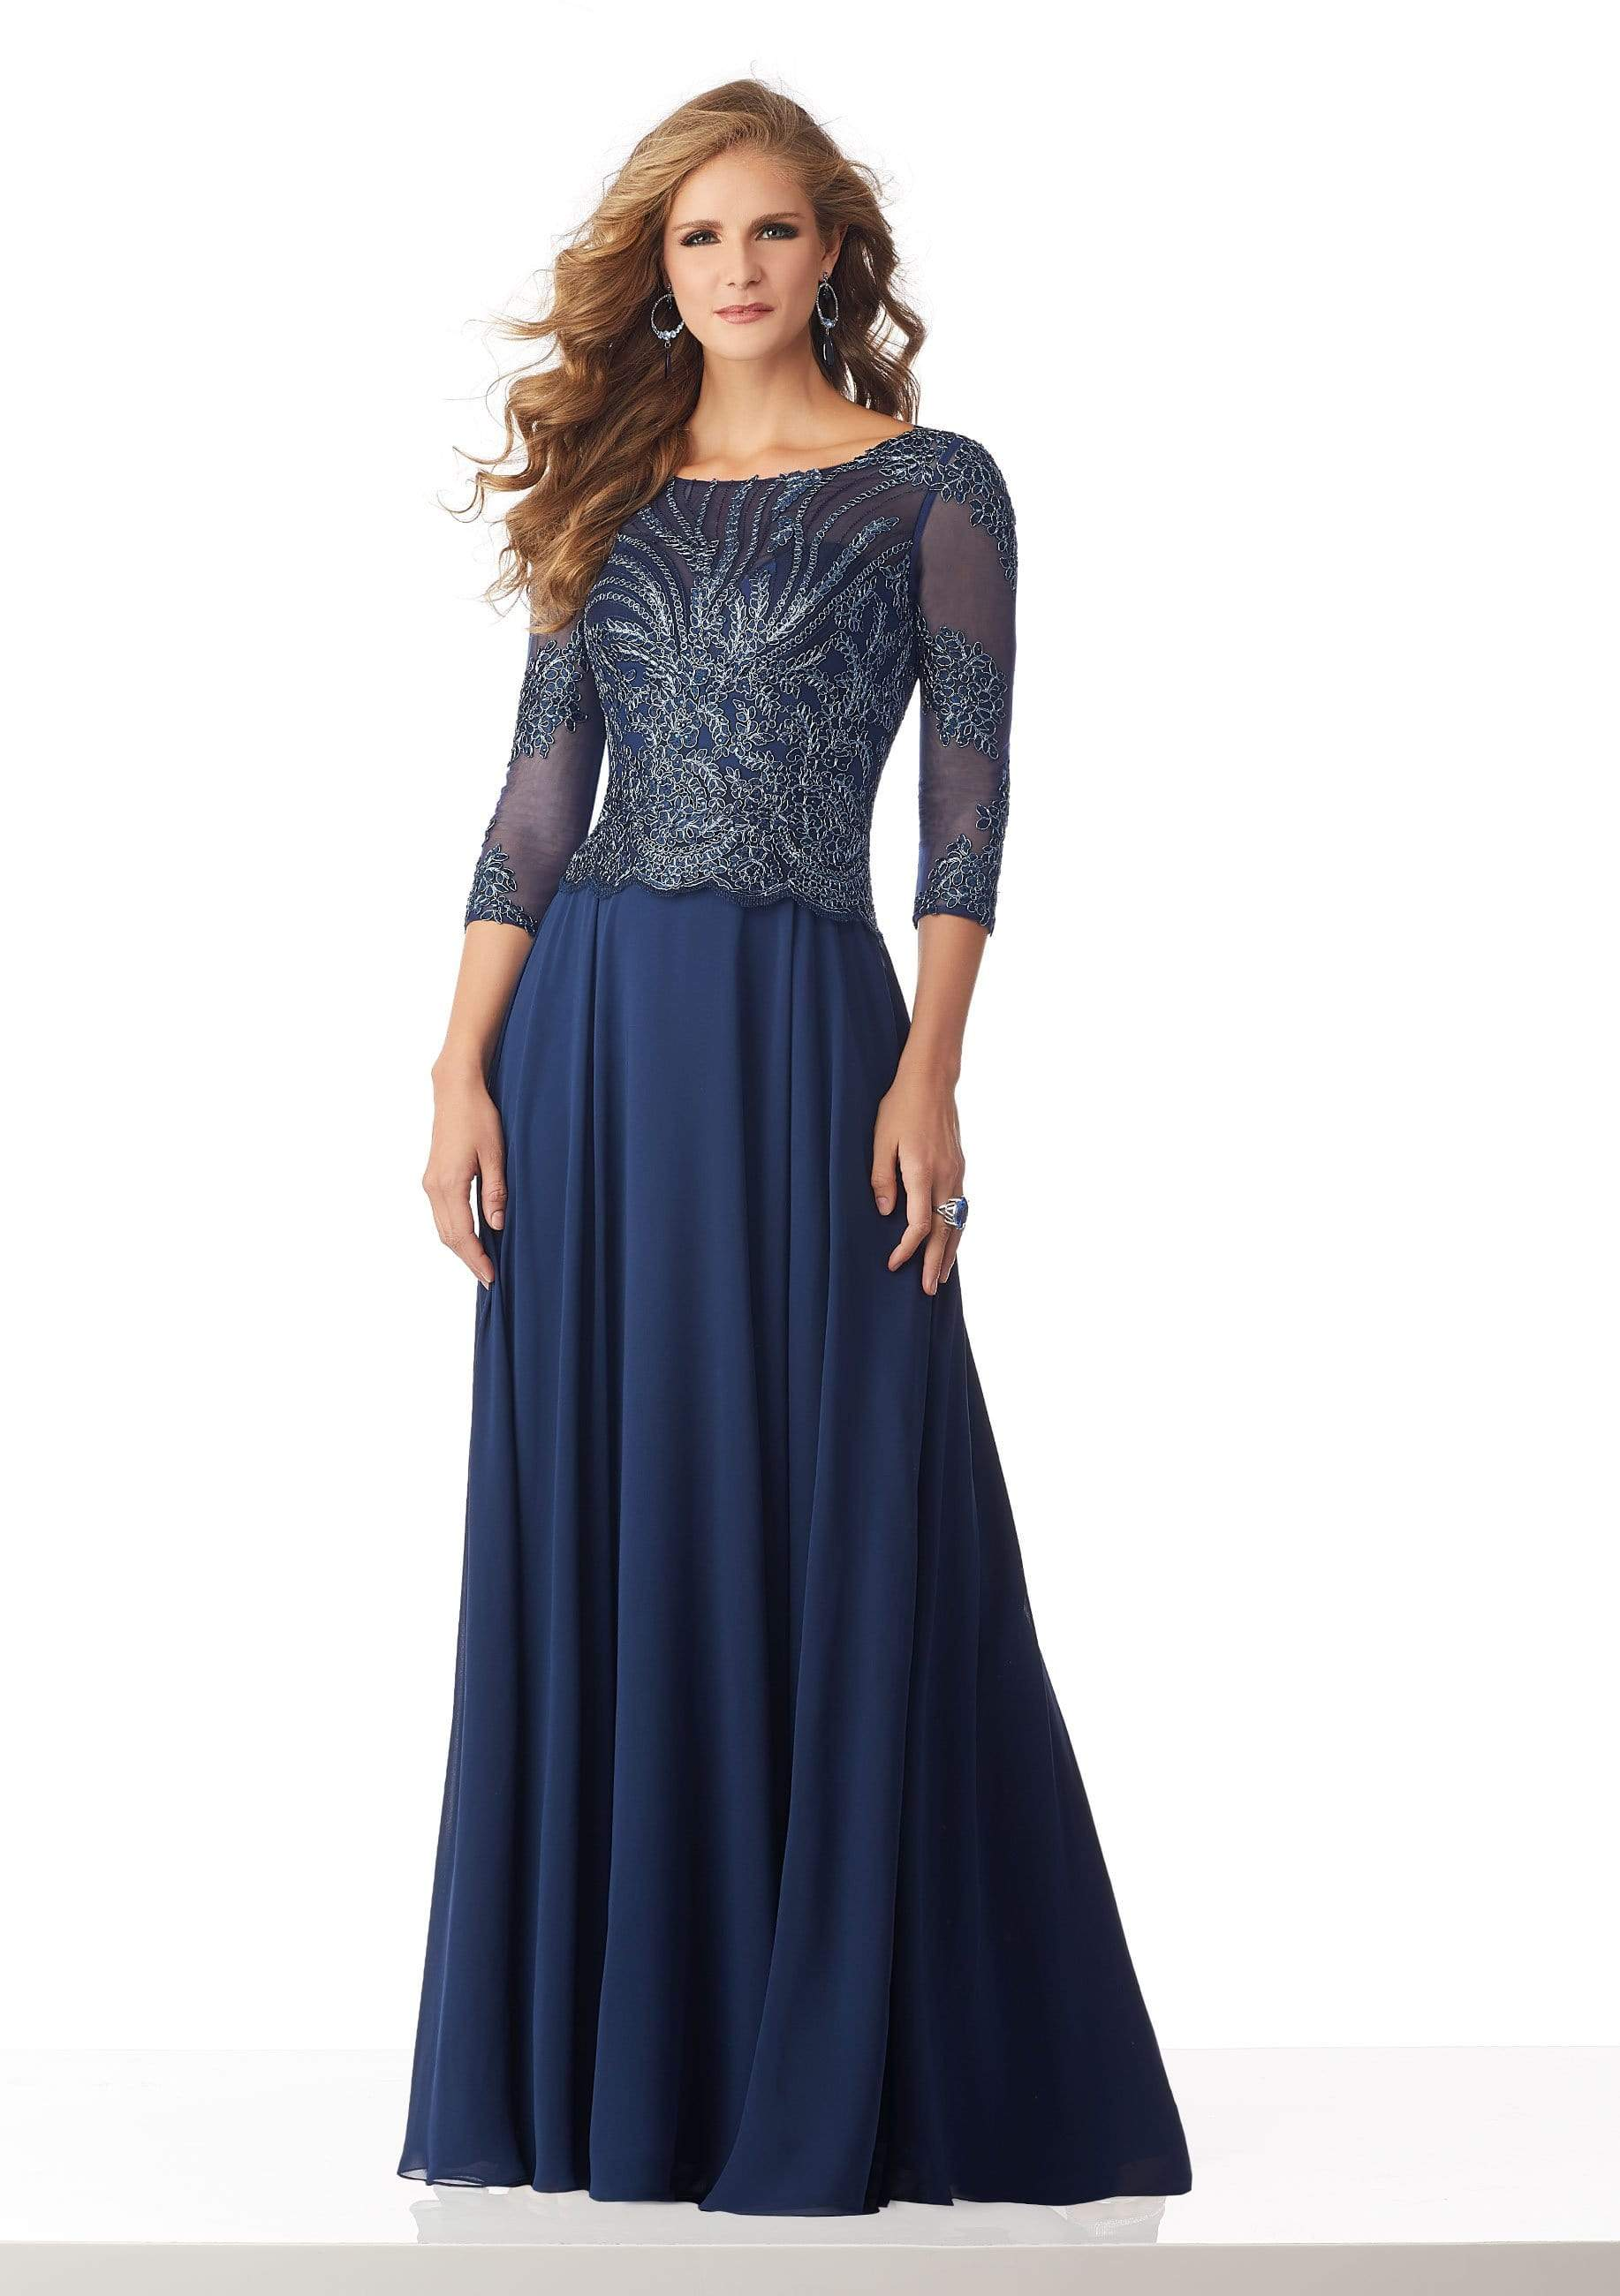 MGNY By Mori Lee - 71813 Metallic Lace A-Line Evening Dress Mother of the Bride Dresses 0 / Navy